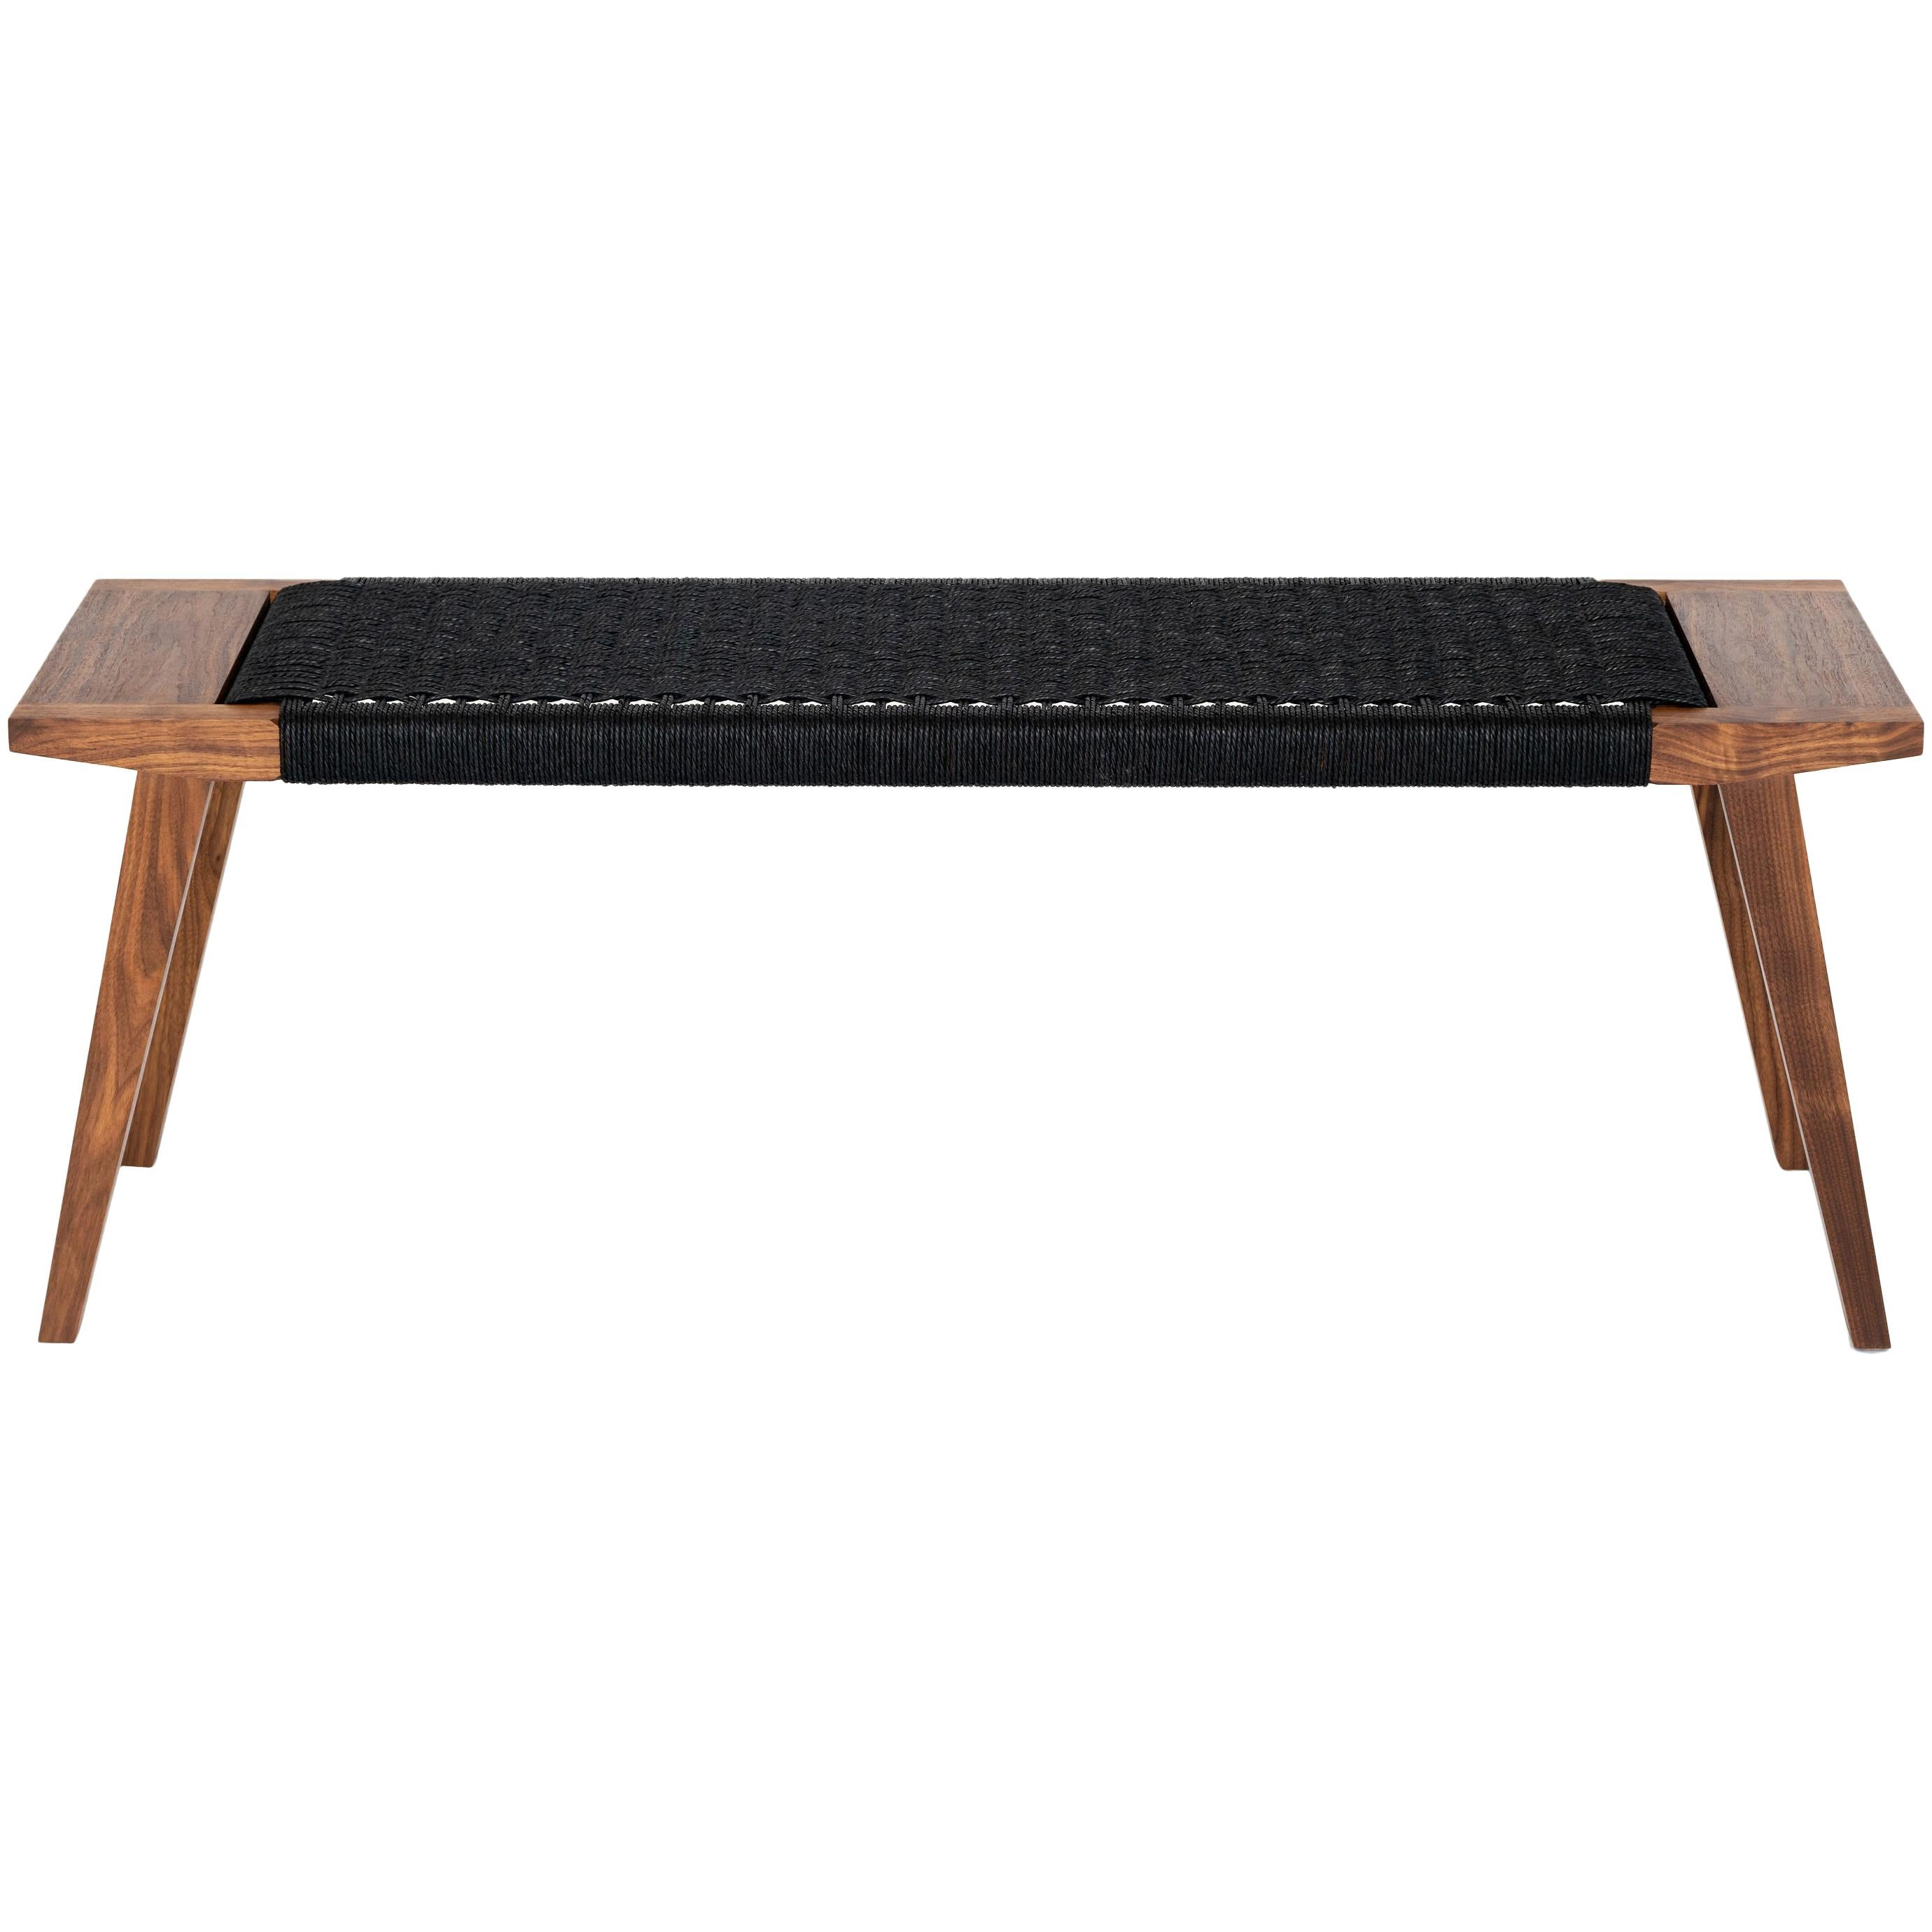 Canva Bench, Walnut with Handwoven Black Danish Chord, Occasional Bench